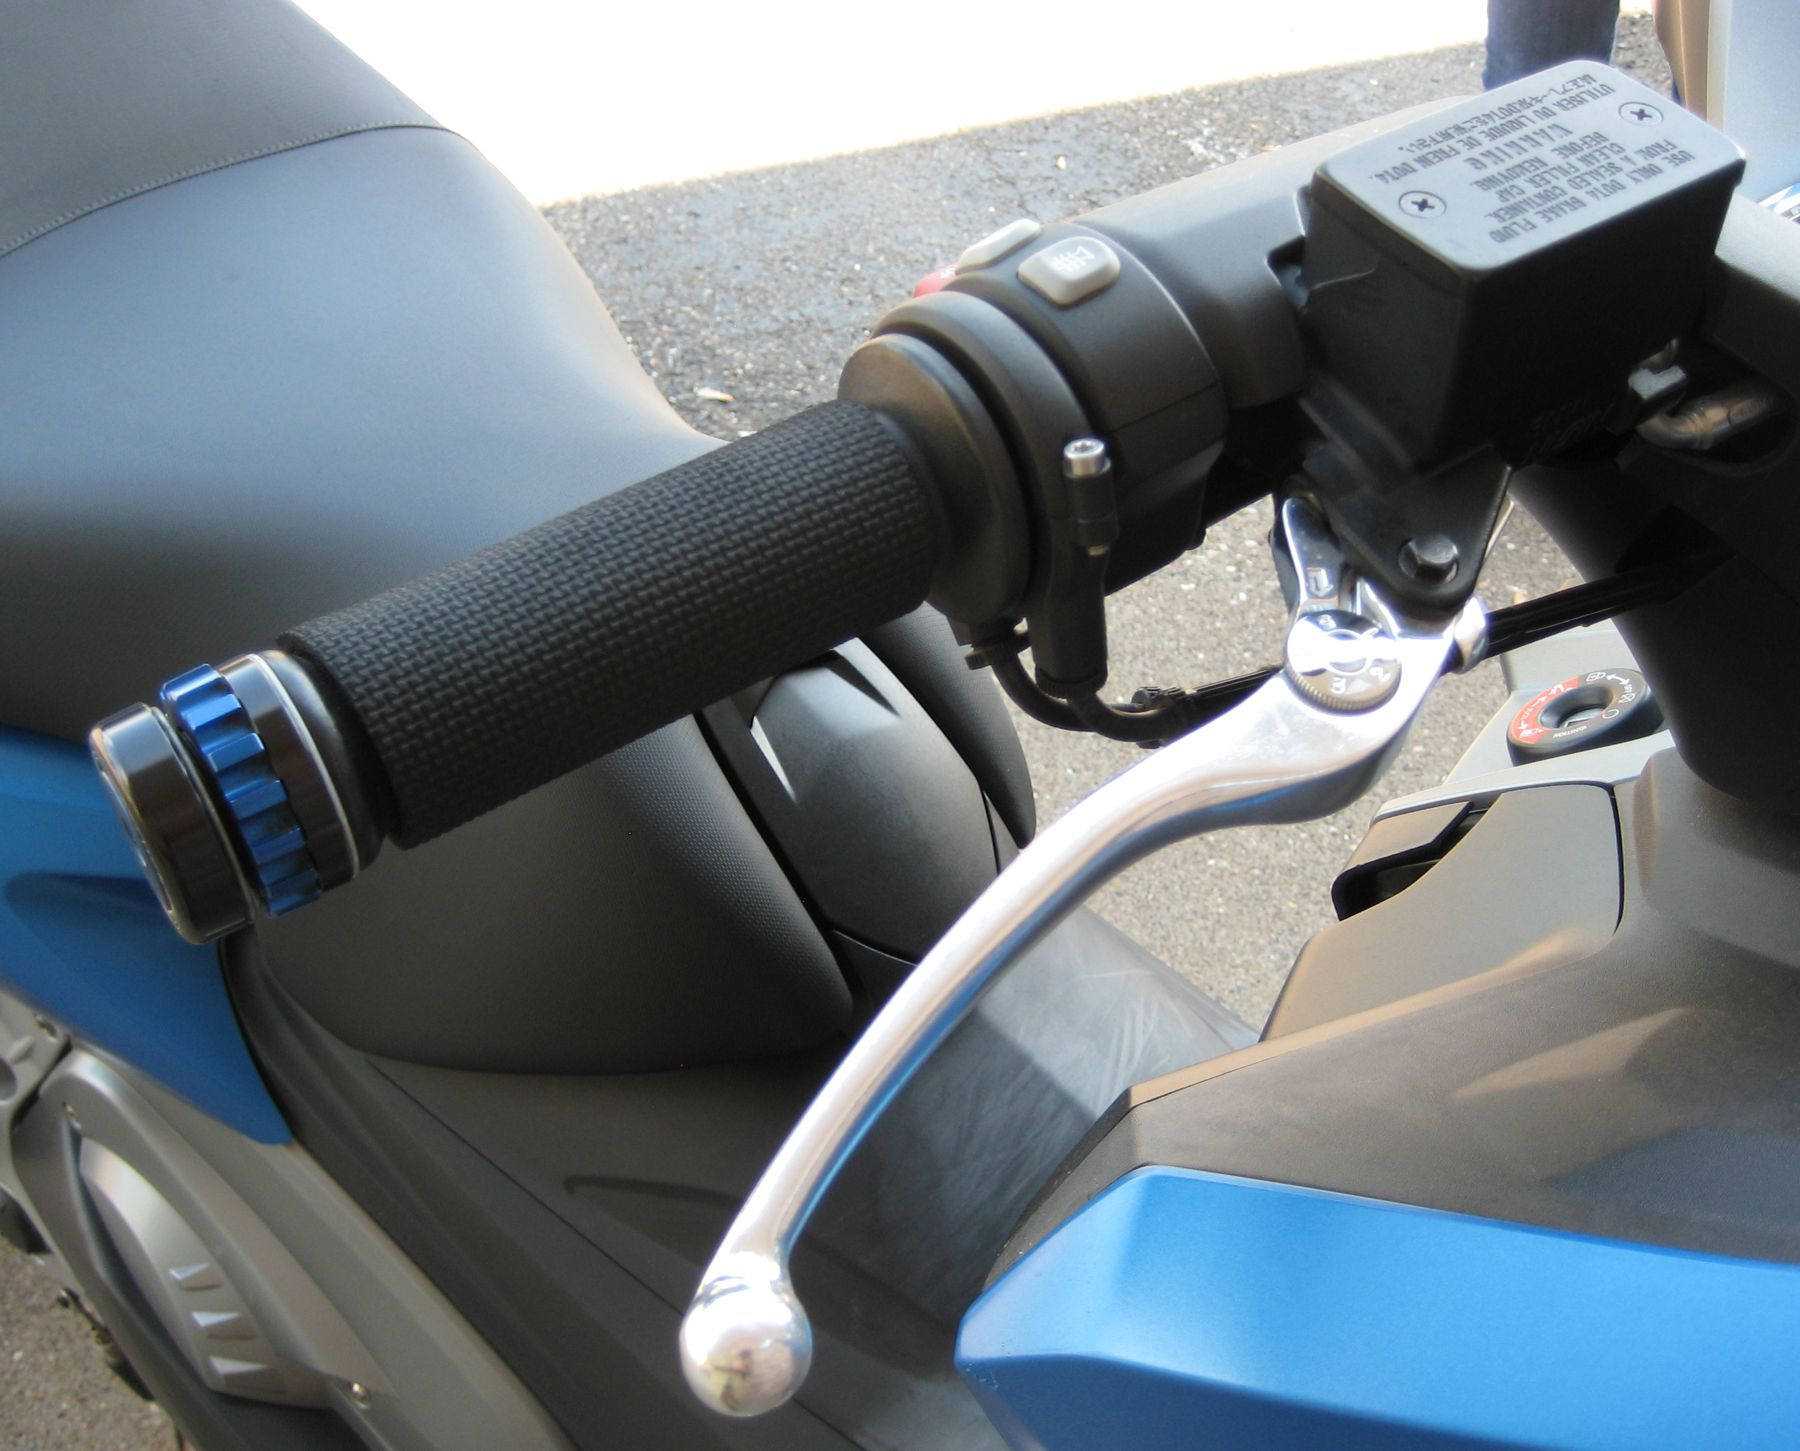 Right grip on the BMW C600 sport